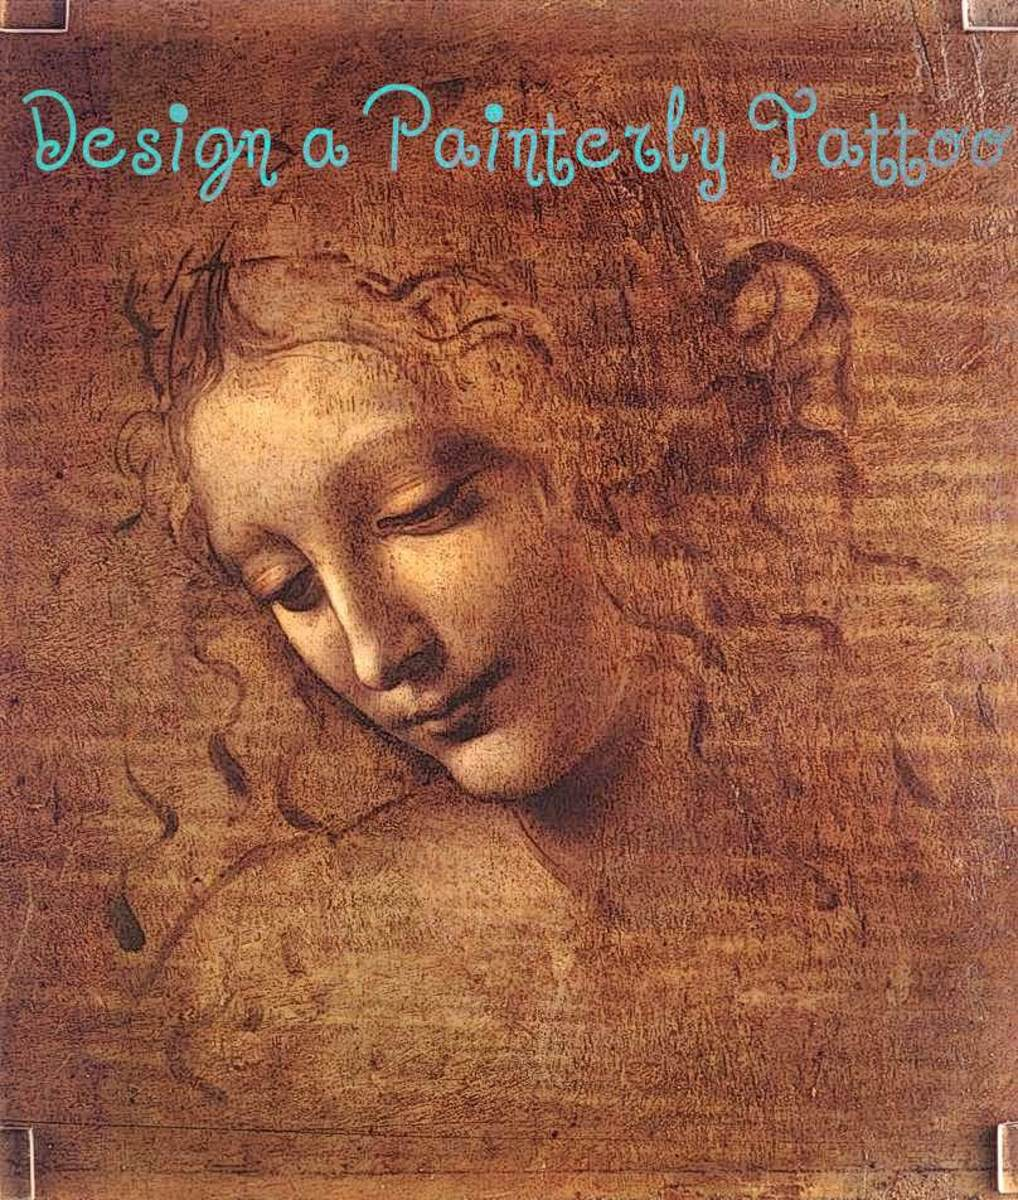 How to Design a Painterly Tattoo